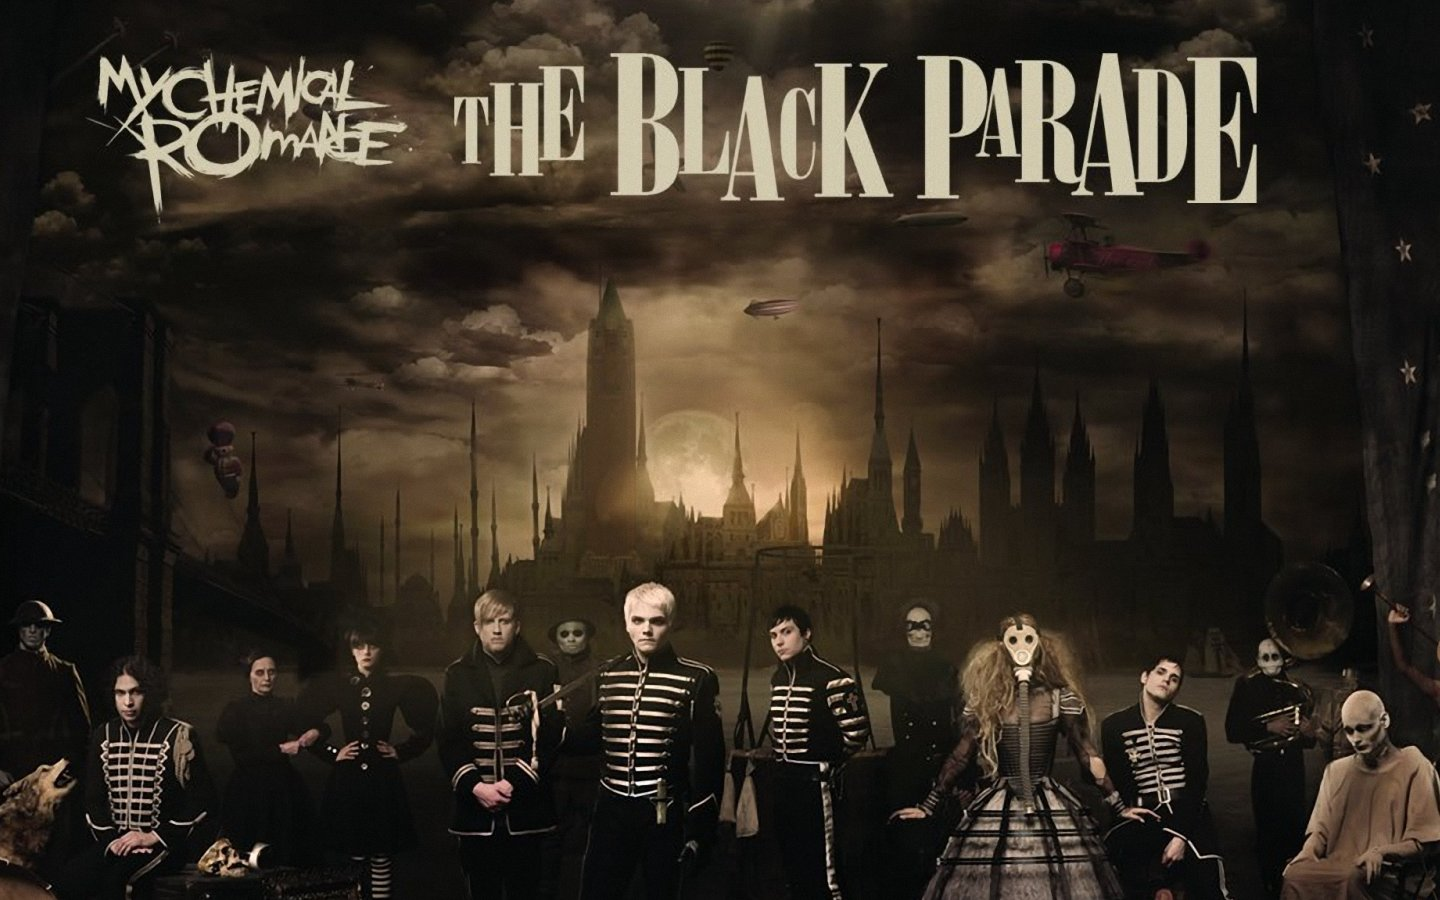 My Chemical Romance Wallpaper 1440x900 Wallpapers 1440x900